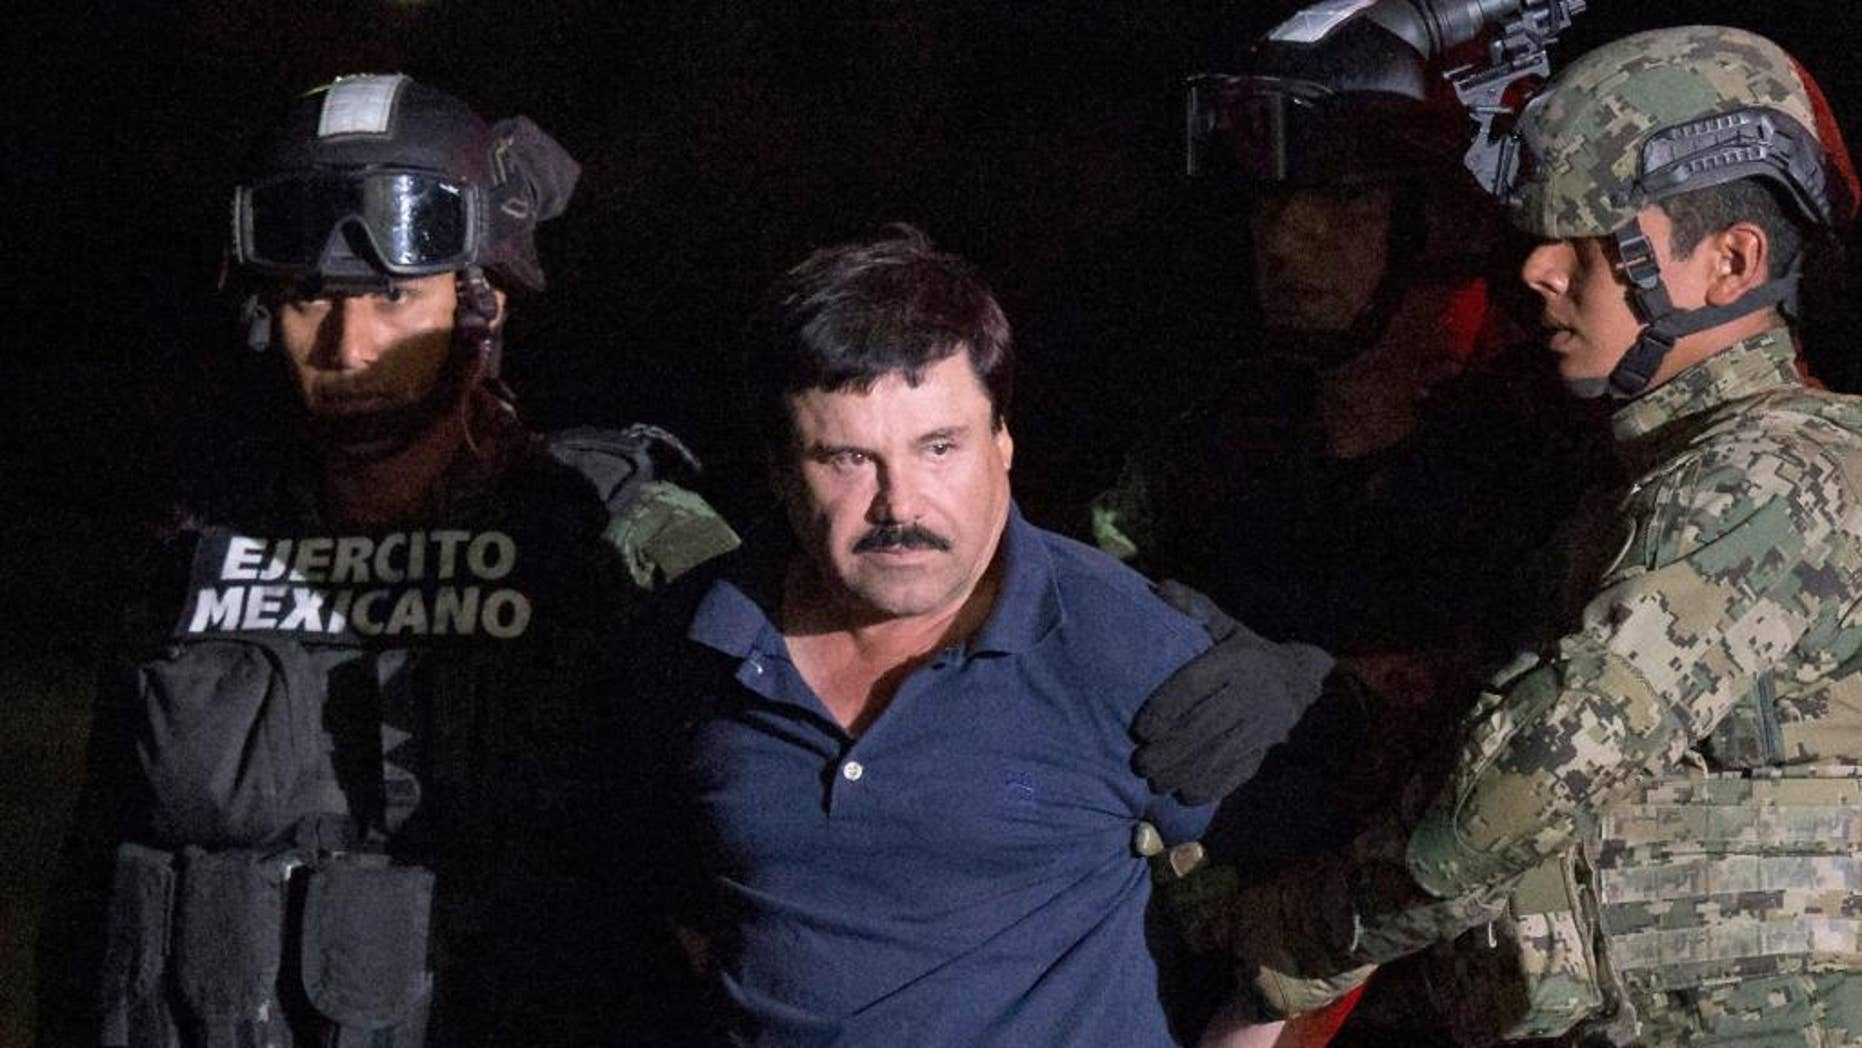 "FILE - In this Jan. 8, 2016 file photo, Mexican drug lord Joaquin ""El Chapo"" Guzman is escorted by army soldiers  to a waiting helicopter, at a federal hangar in Mexico City, after he was recaptured from breaking out of a maximum security prison in Mexico. The History channel says it's developing a drama series focusing on Guzman's story. Last year, Guzman had broken out of prison and was on the run when he had a secret meeting with Mexican actress Kate del Castillo and Sean Penn. The actor wrote about it for Rolling Stone. (AP Photo/Rebecca Blackwell, File)"